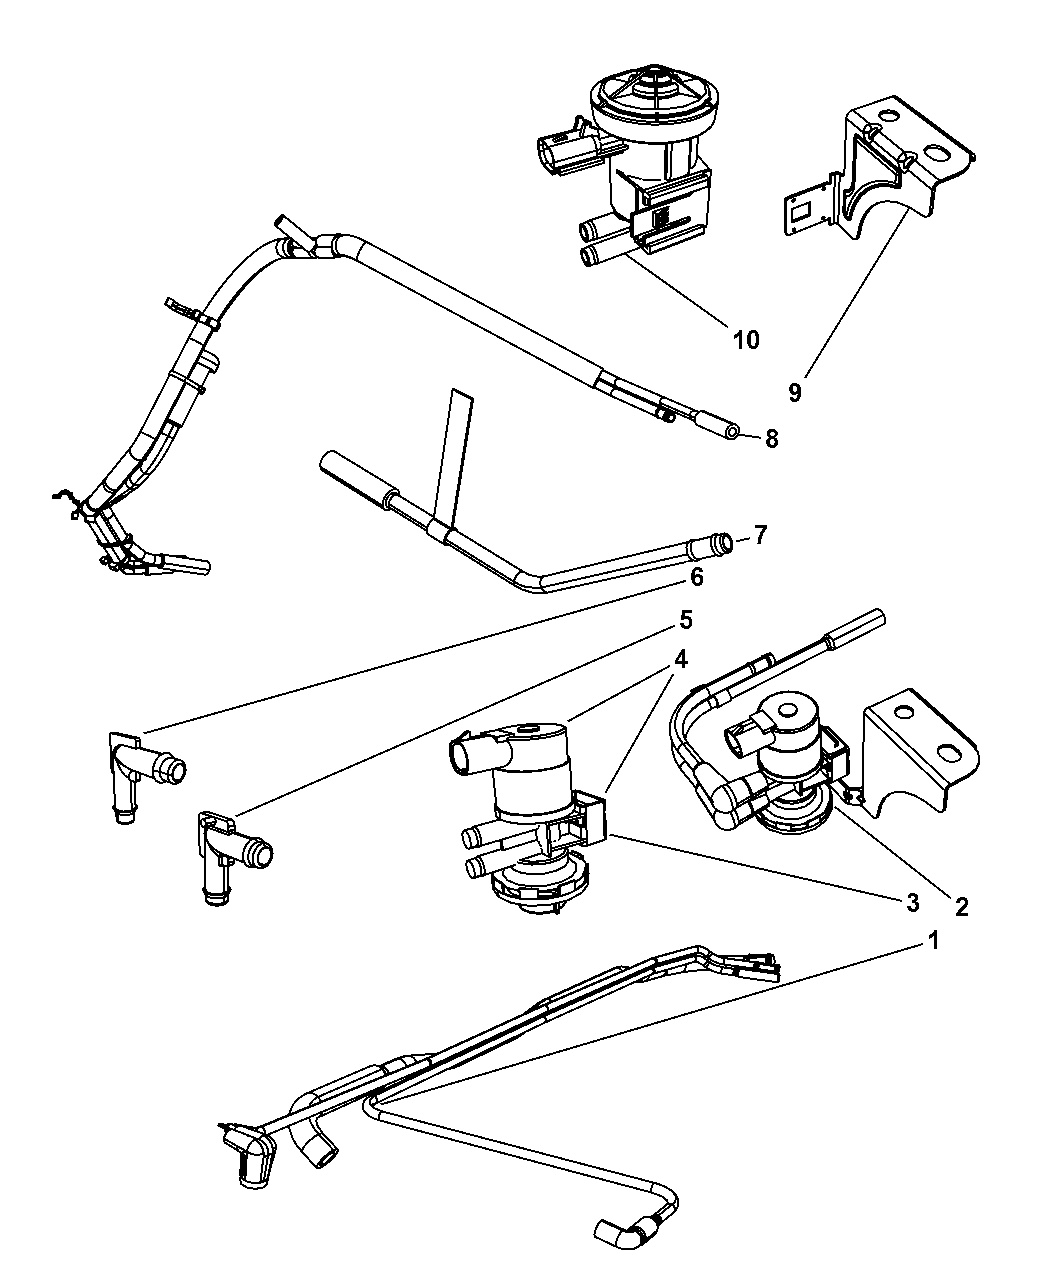 dodge ram 1500 fuel system diagram 52121035ac genuine mopar harness vacuum emission  genuine mopar harness vacuum emission